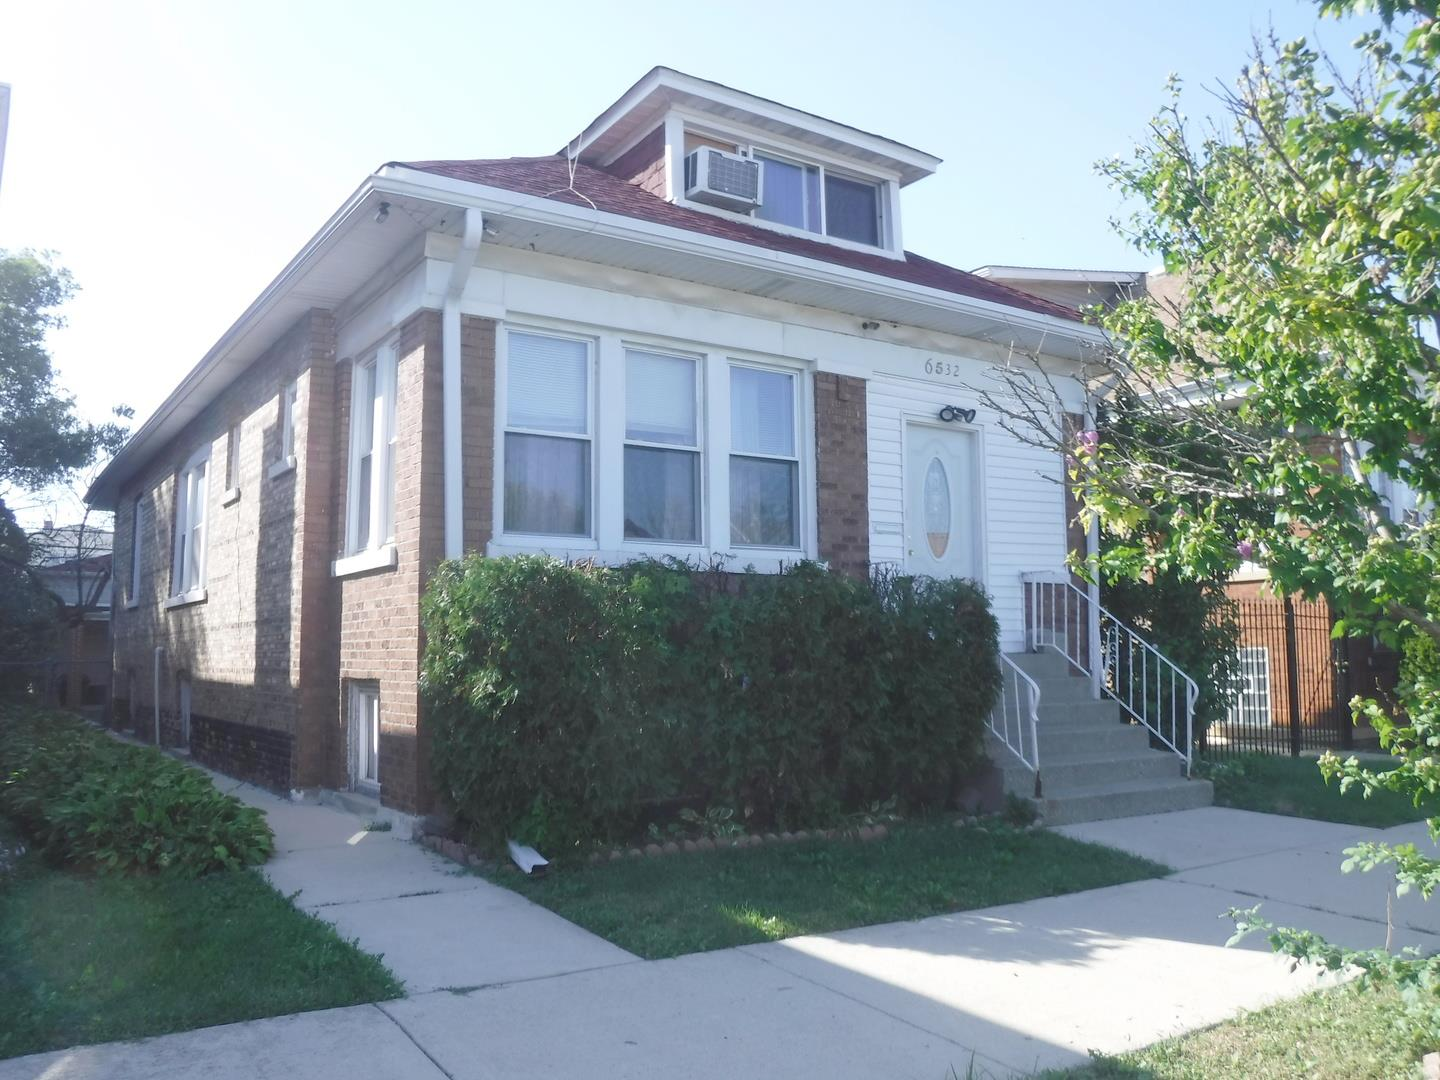 6532 S Whipple Street, Chicago, IL 60629 - #: 10860363